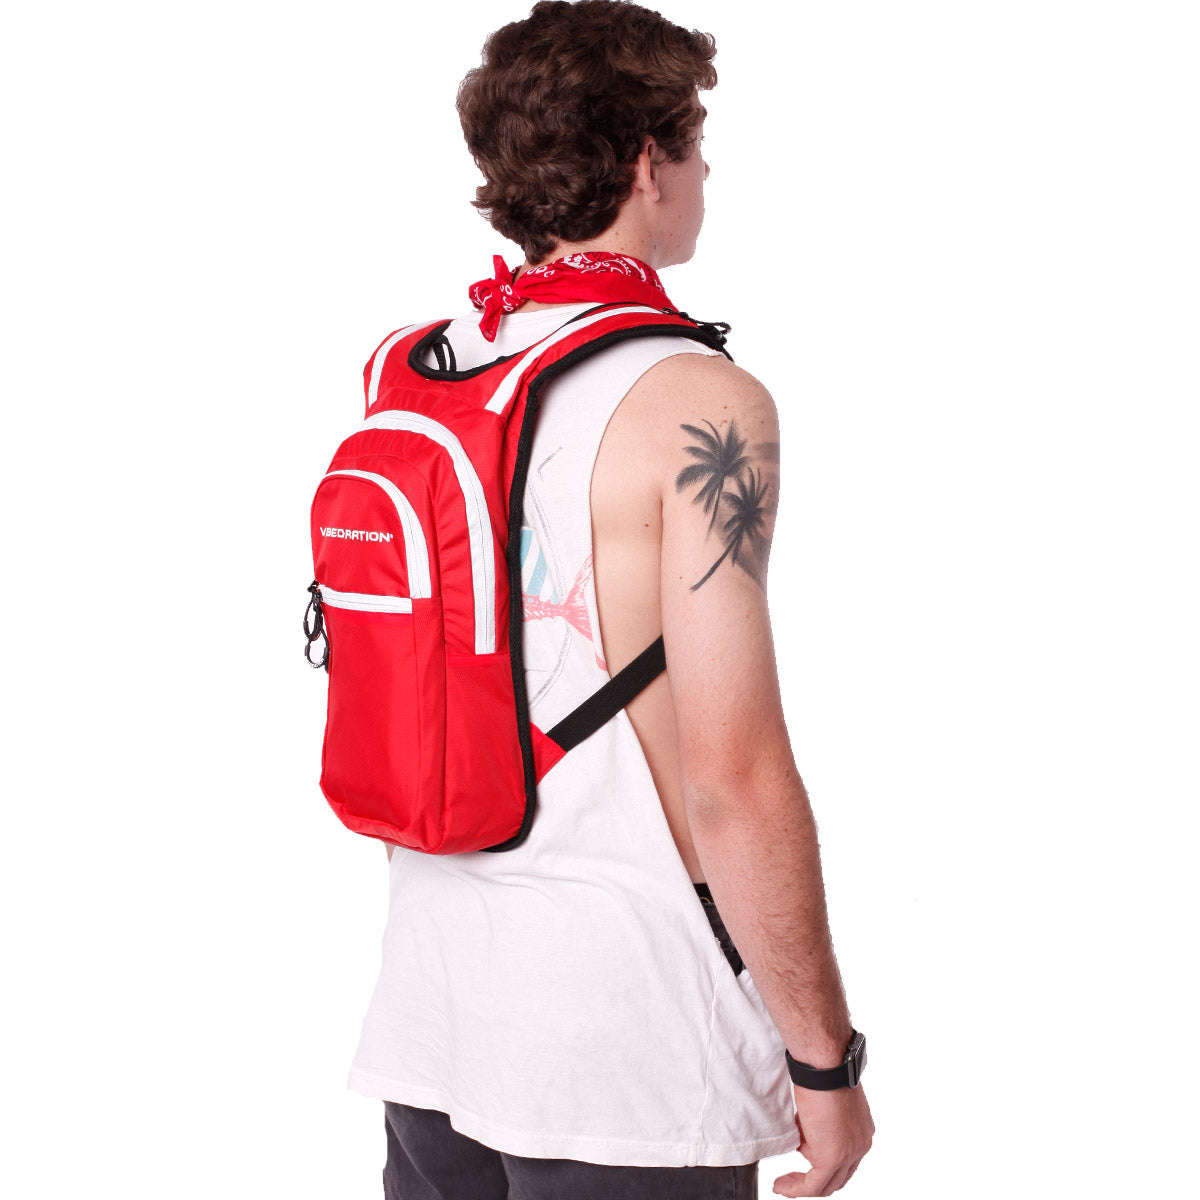 Side view of male wearing red and white hydration pack with three pockets.